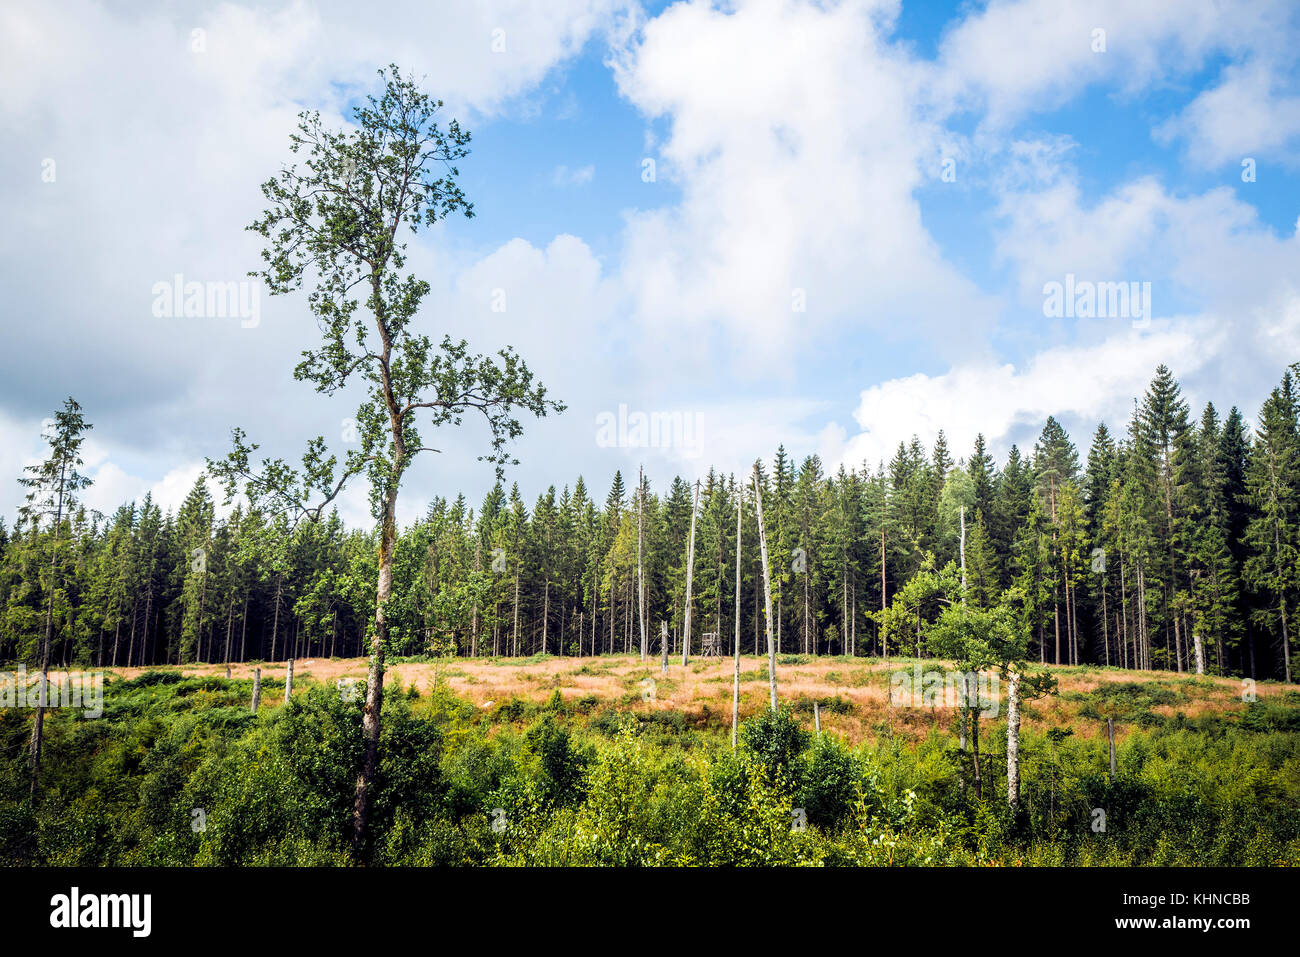 Wilderness with tall pine trees in a dry area with greem bushes and blue sky - Stock Image